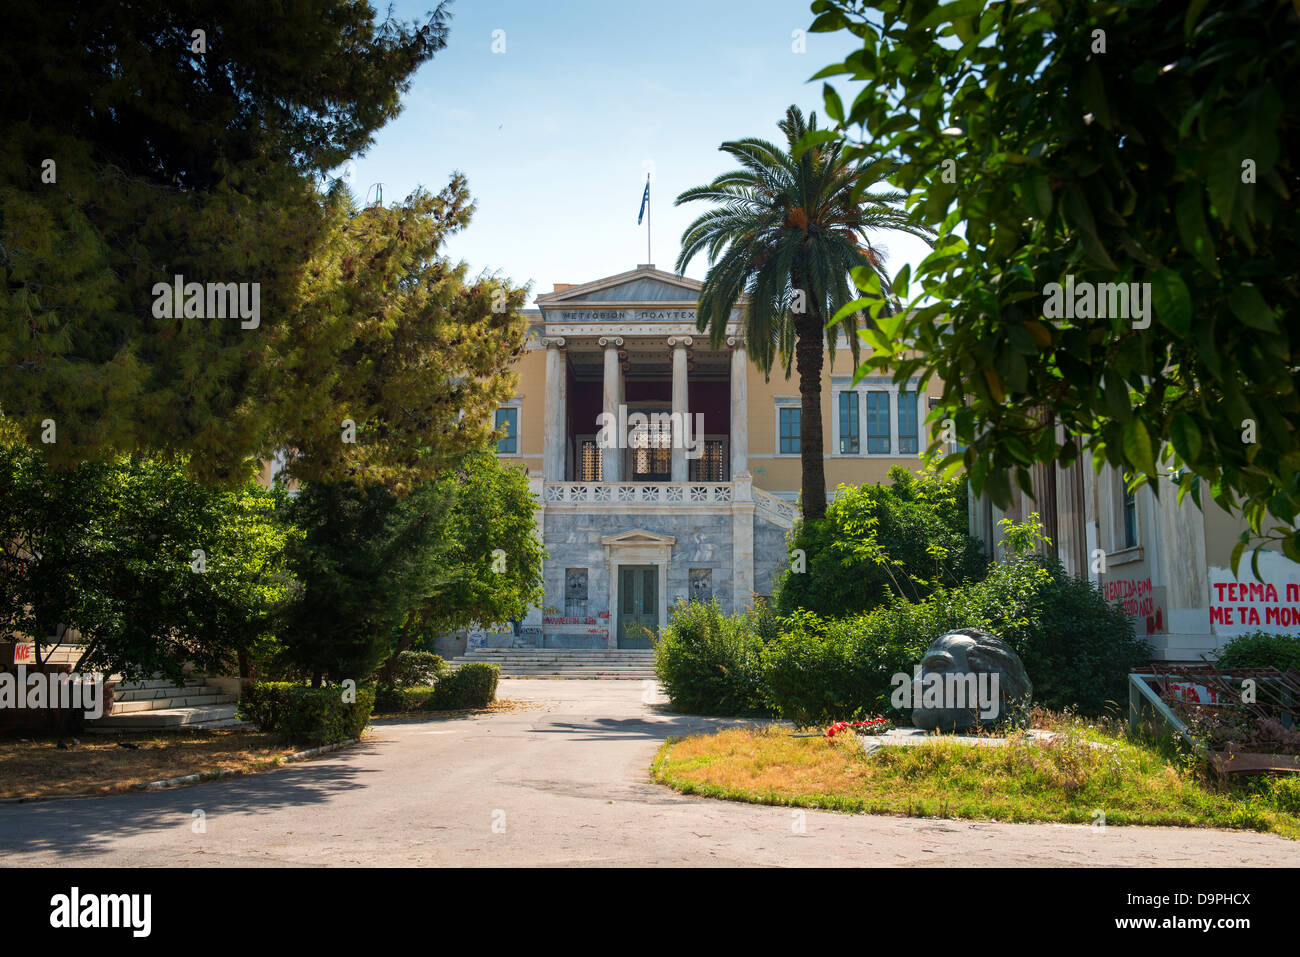 National Technological University of Athens - Stock Image